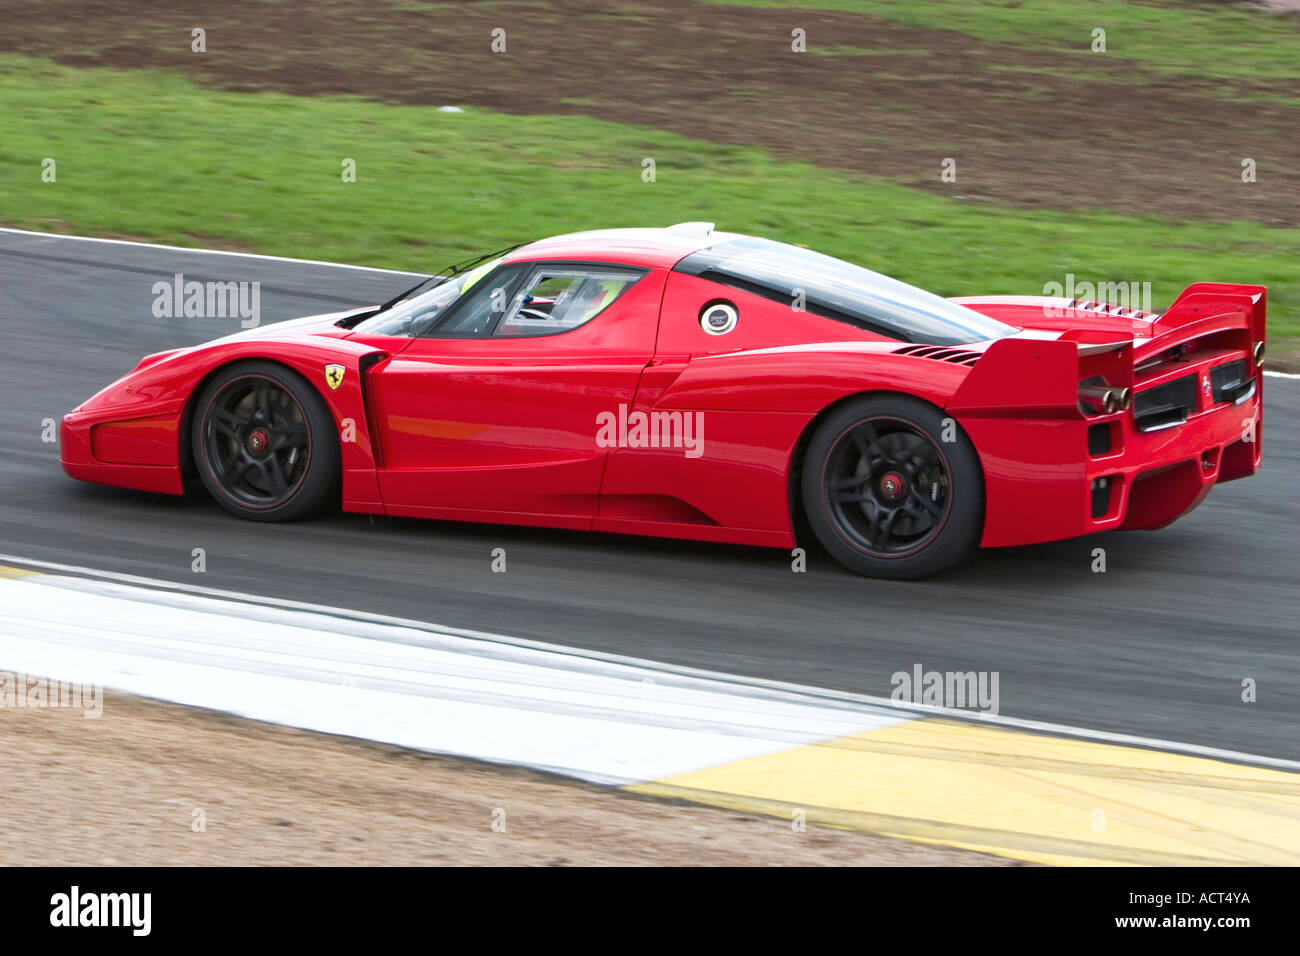 Ferrari Enzo Fxx 2006 Race Car At Knockhill Racing Circuit Stock Photo Alamy